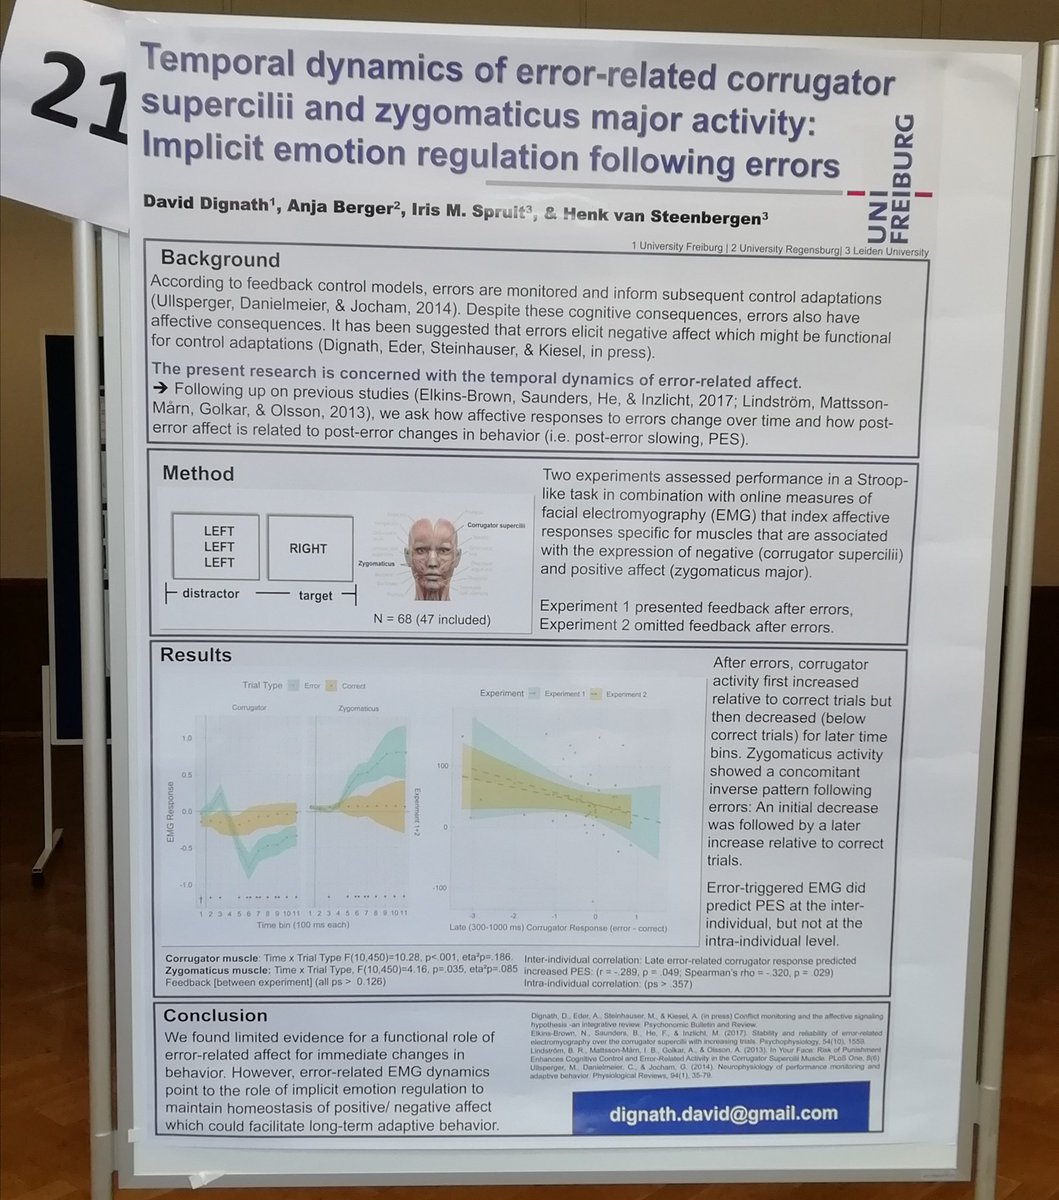 #mcc2019 participants, come and see the cool poster on the affective valence of errors and its regulation presented by David Dignath at today's poster session @MCC_2019